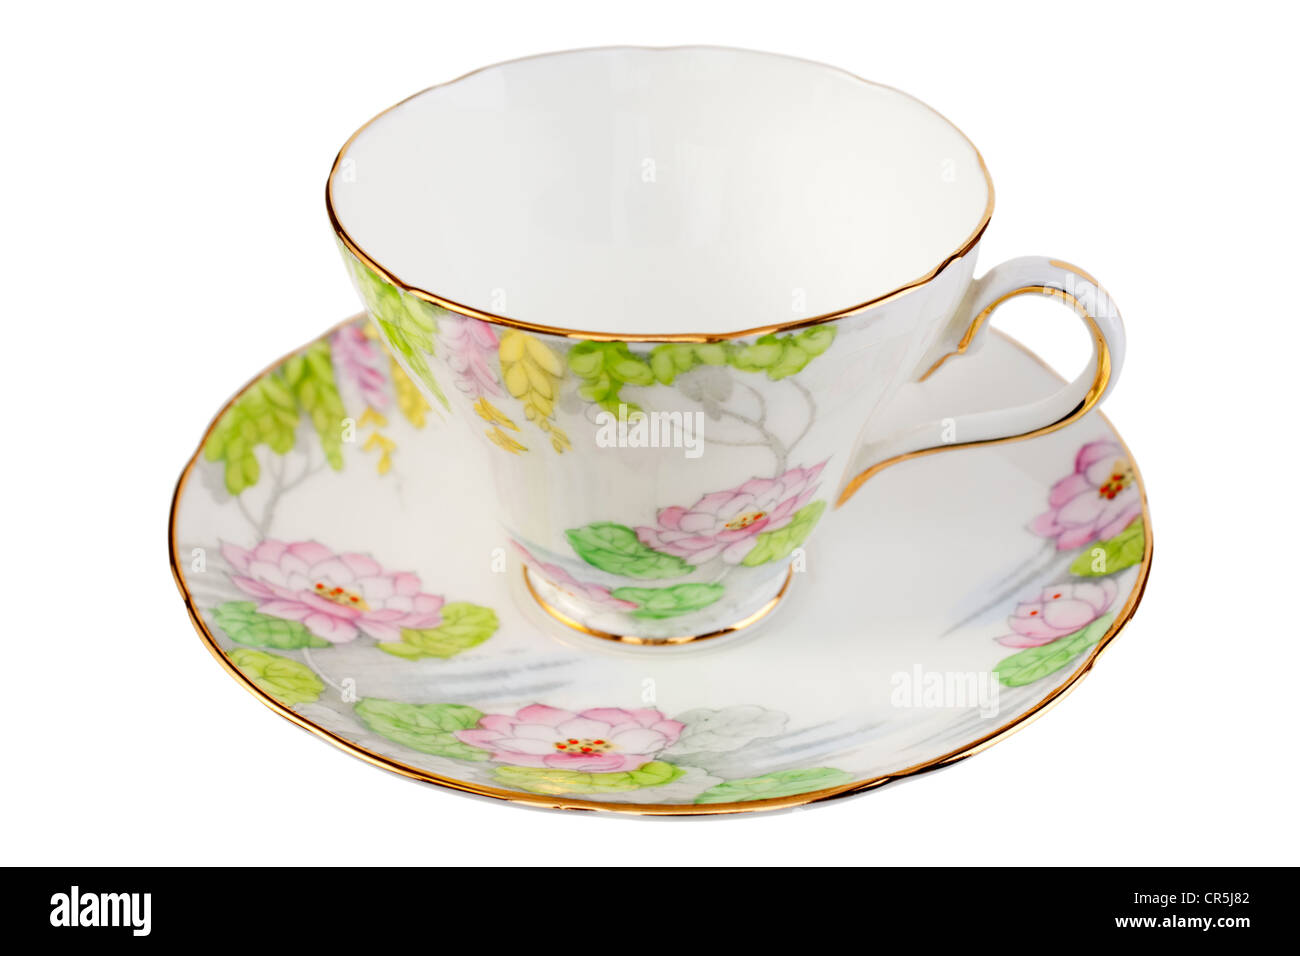 Old bone china cup and saucer with a pretty floral design in pastel colours, isolated on white. - Stock Image